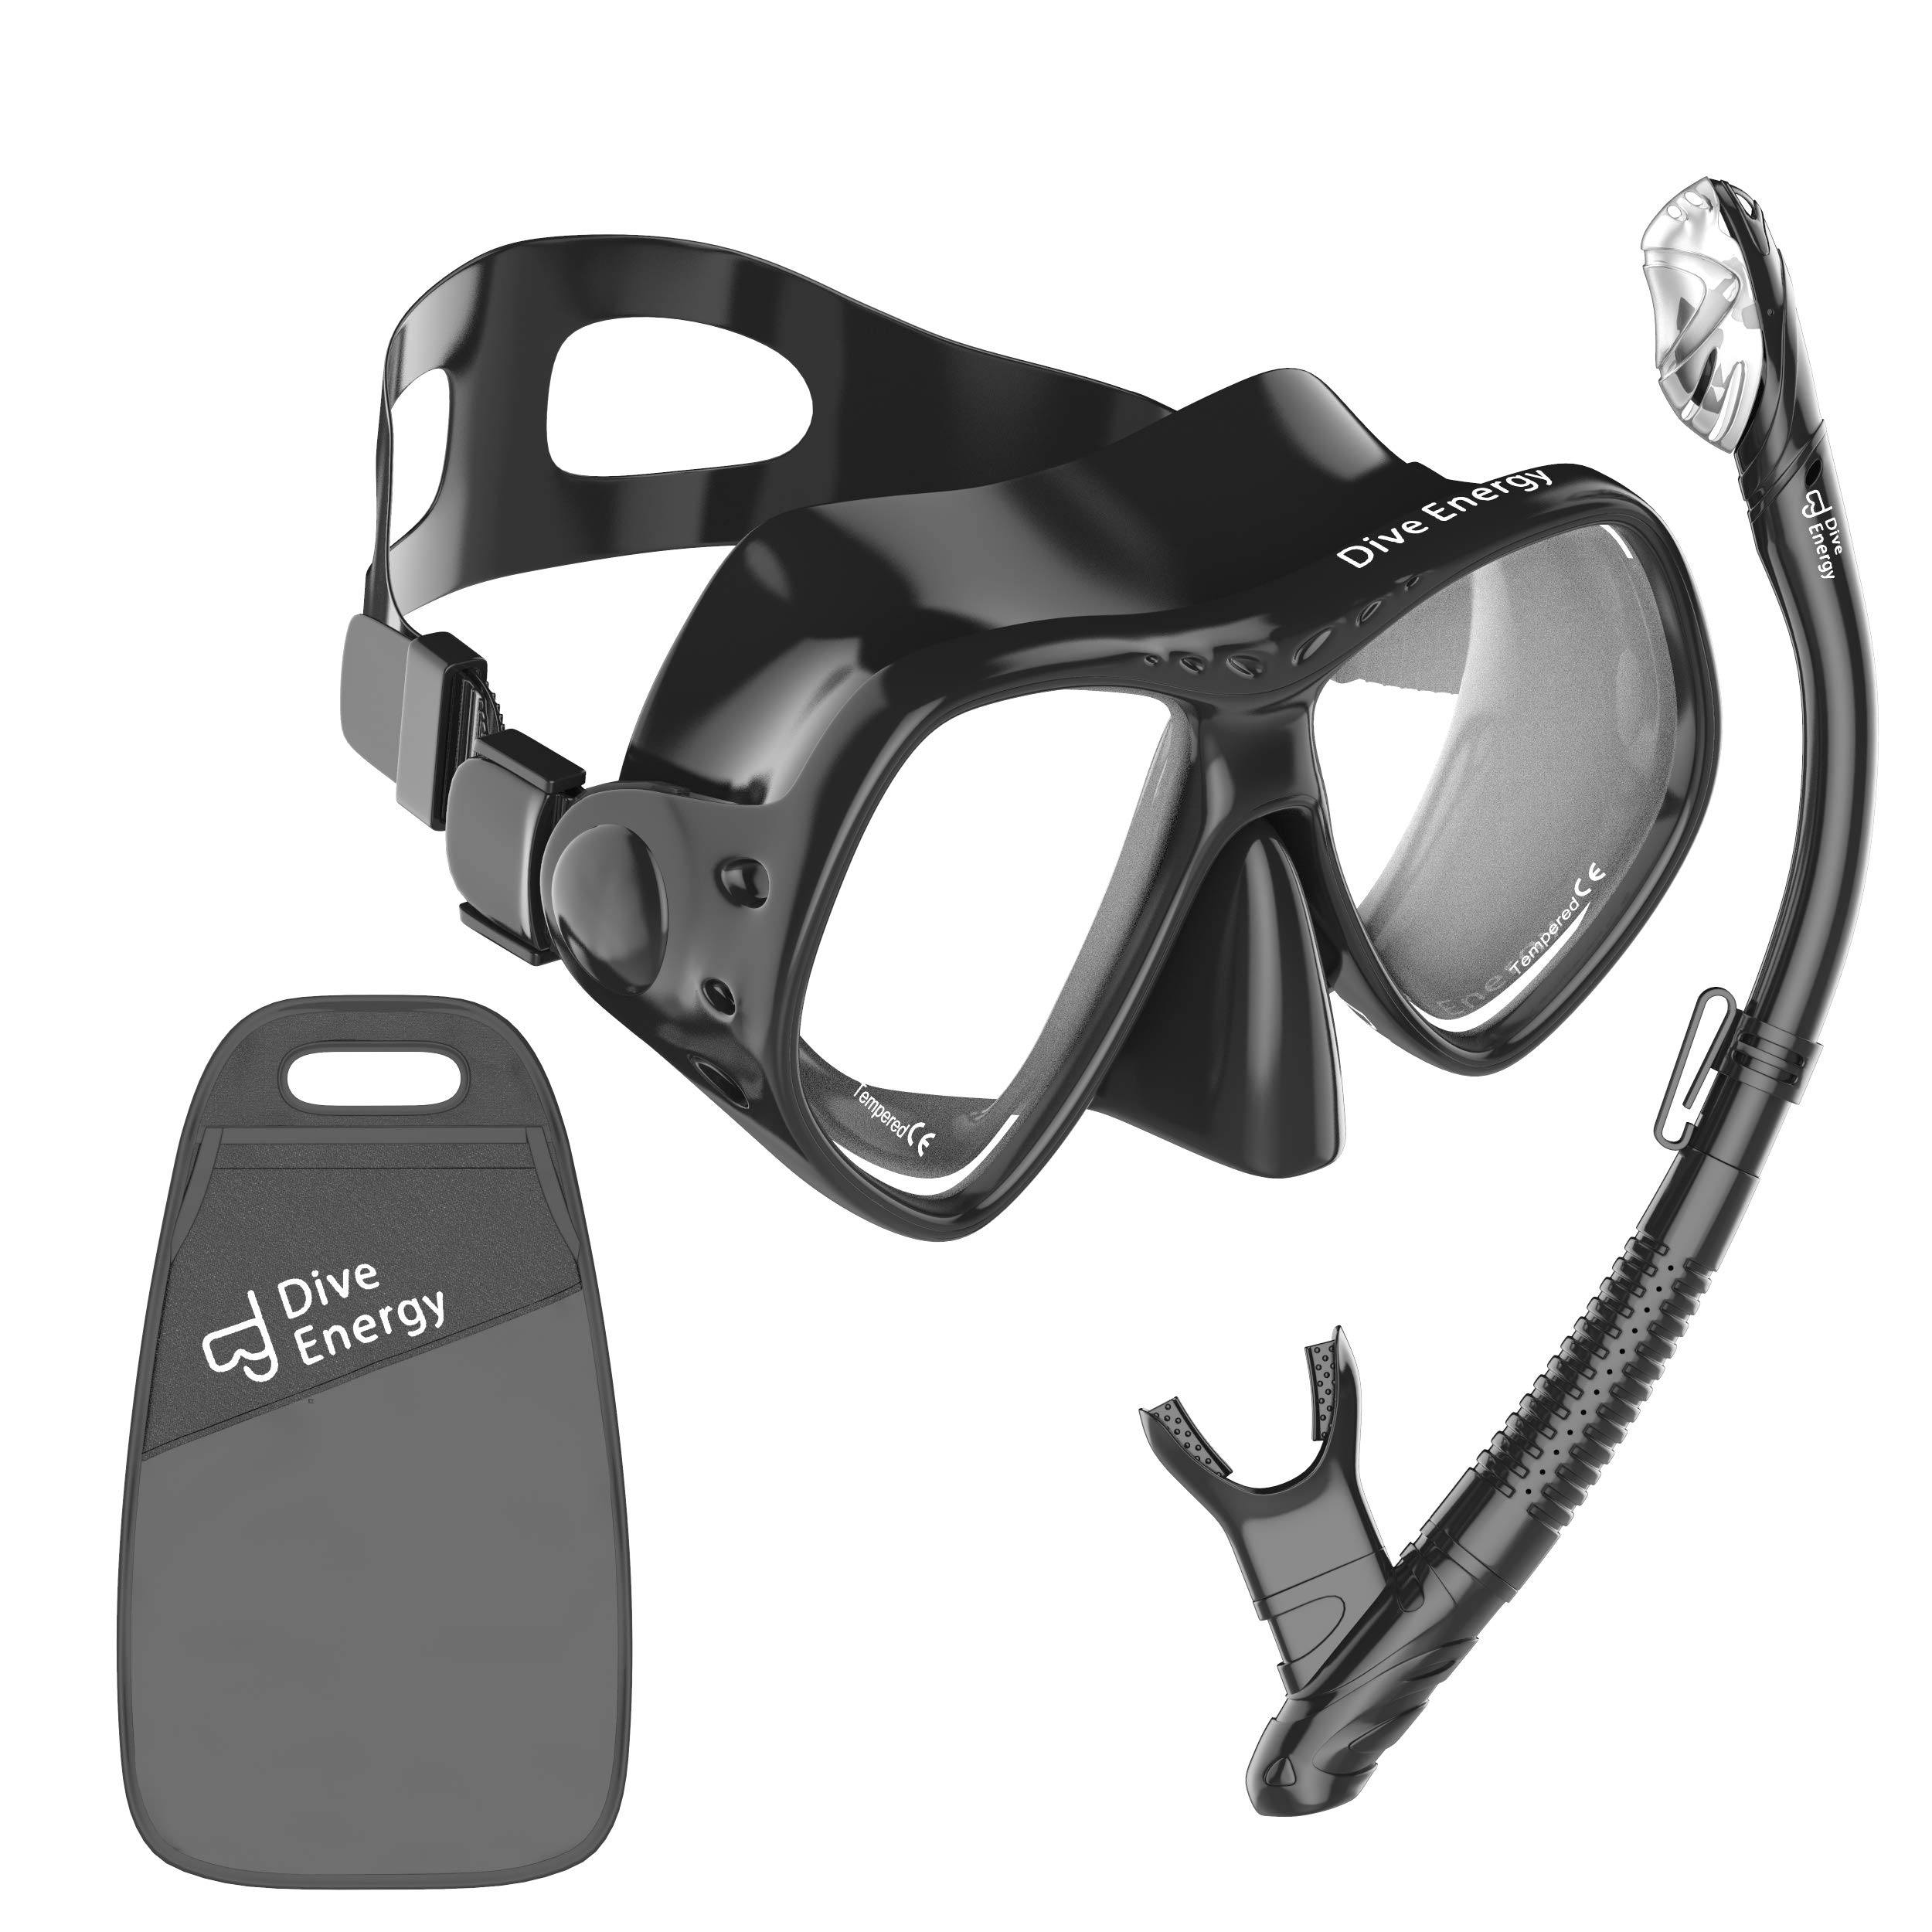 Professional Snorkel Set - Anti-Fogging, Tempered Glass Snorkel Mask - Clear View Scuba Diving - Easy Breathing - No Leaks Snorkel Kit + Carry Bag by Dive Energy